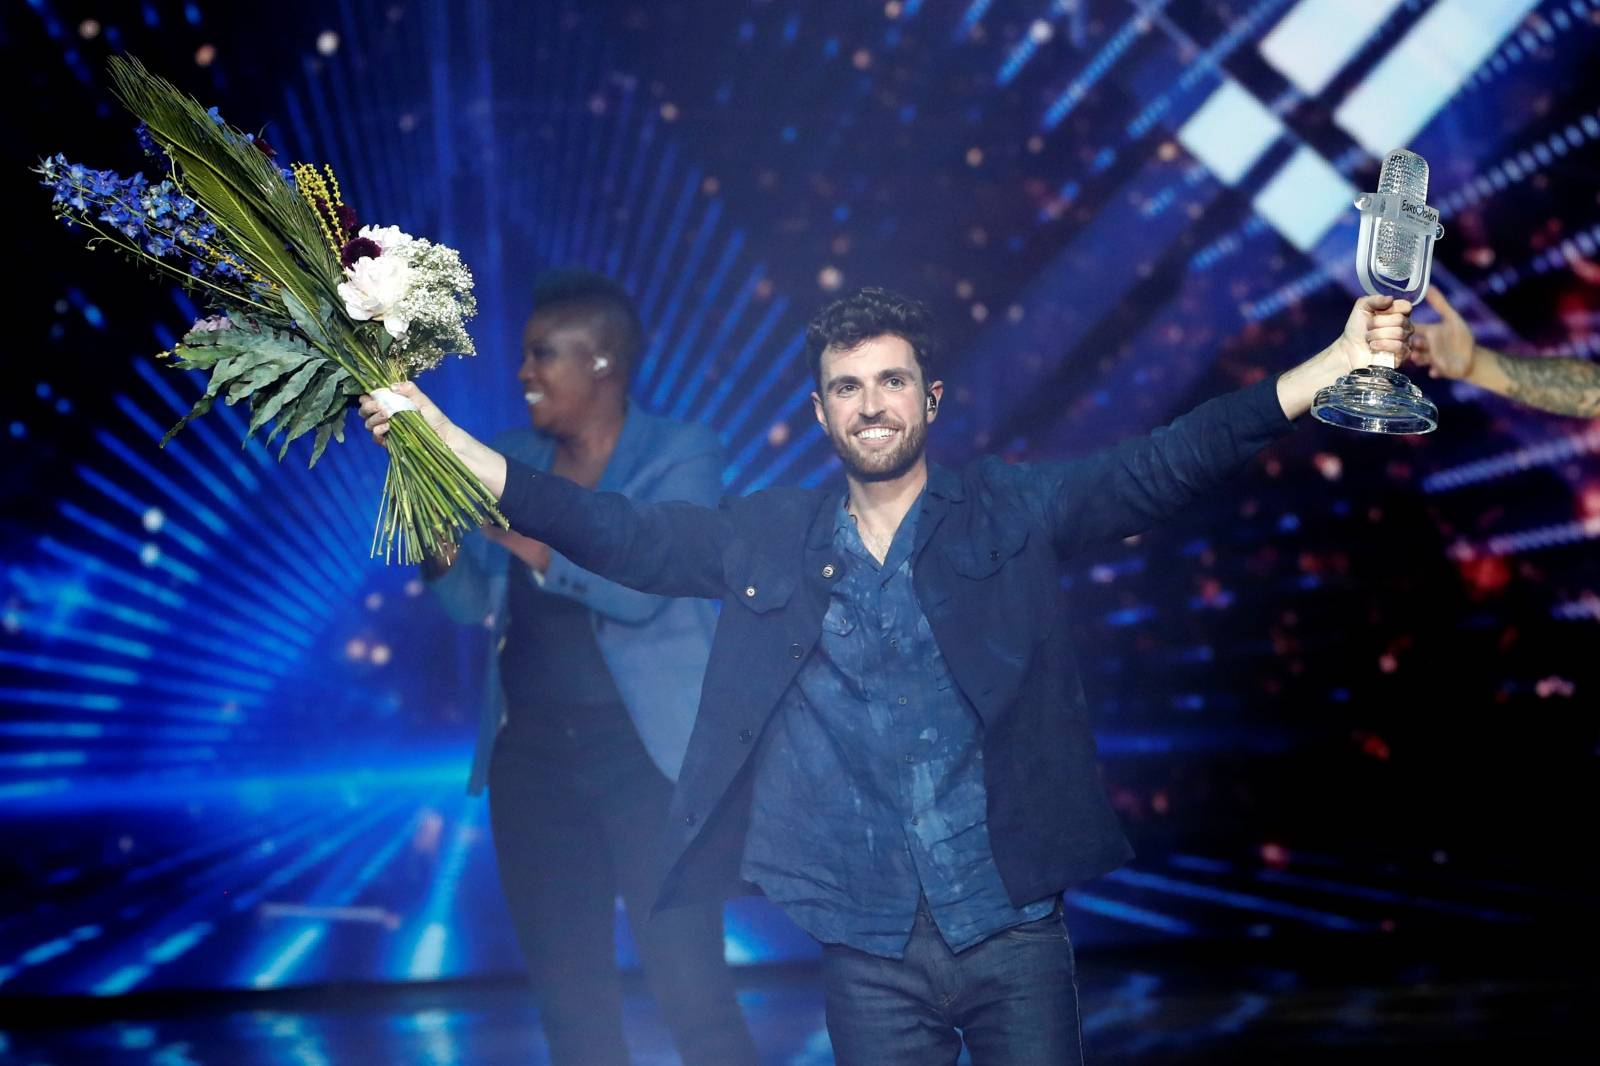 Duncan Laurence of the Netherlands reacts after winning the 2019 Eurovision Song Contest in Tel Aviv, Israel